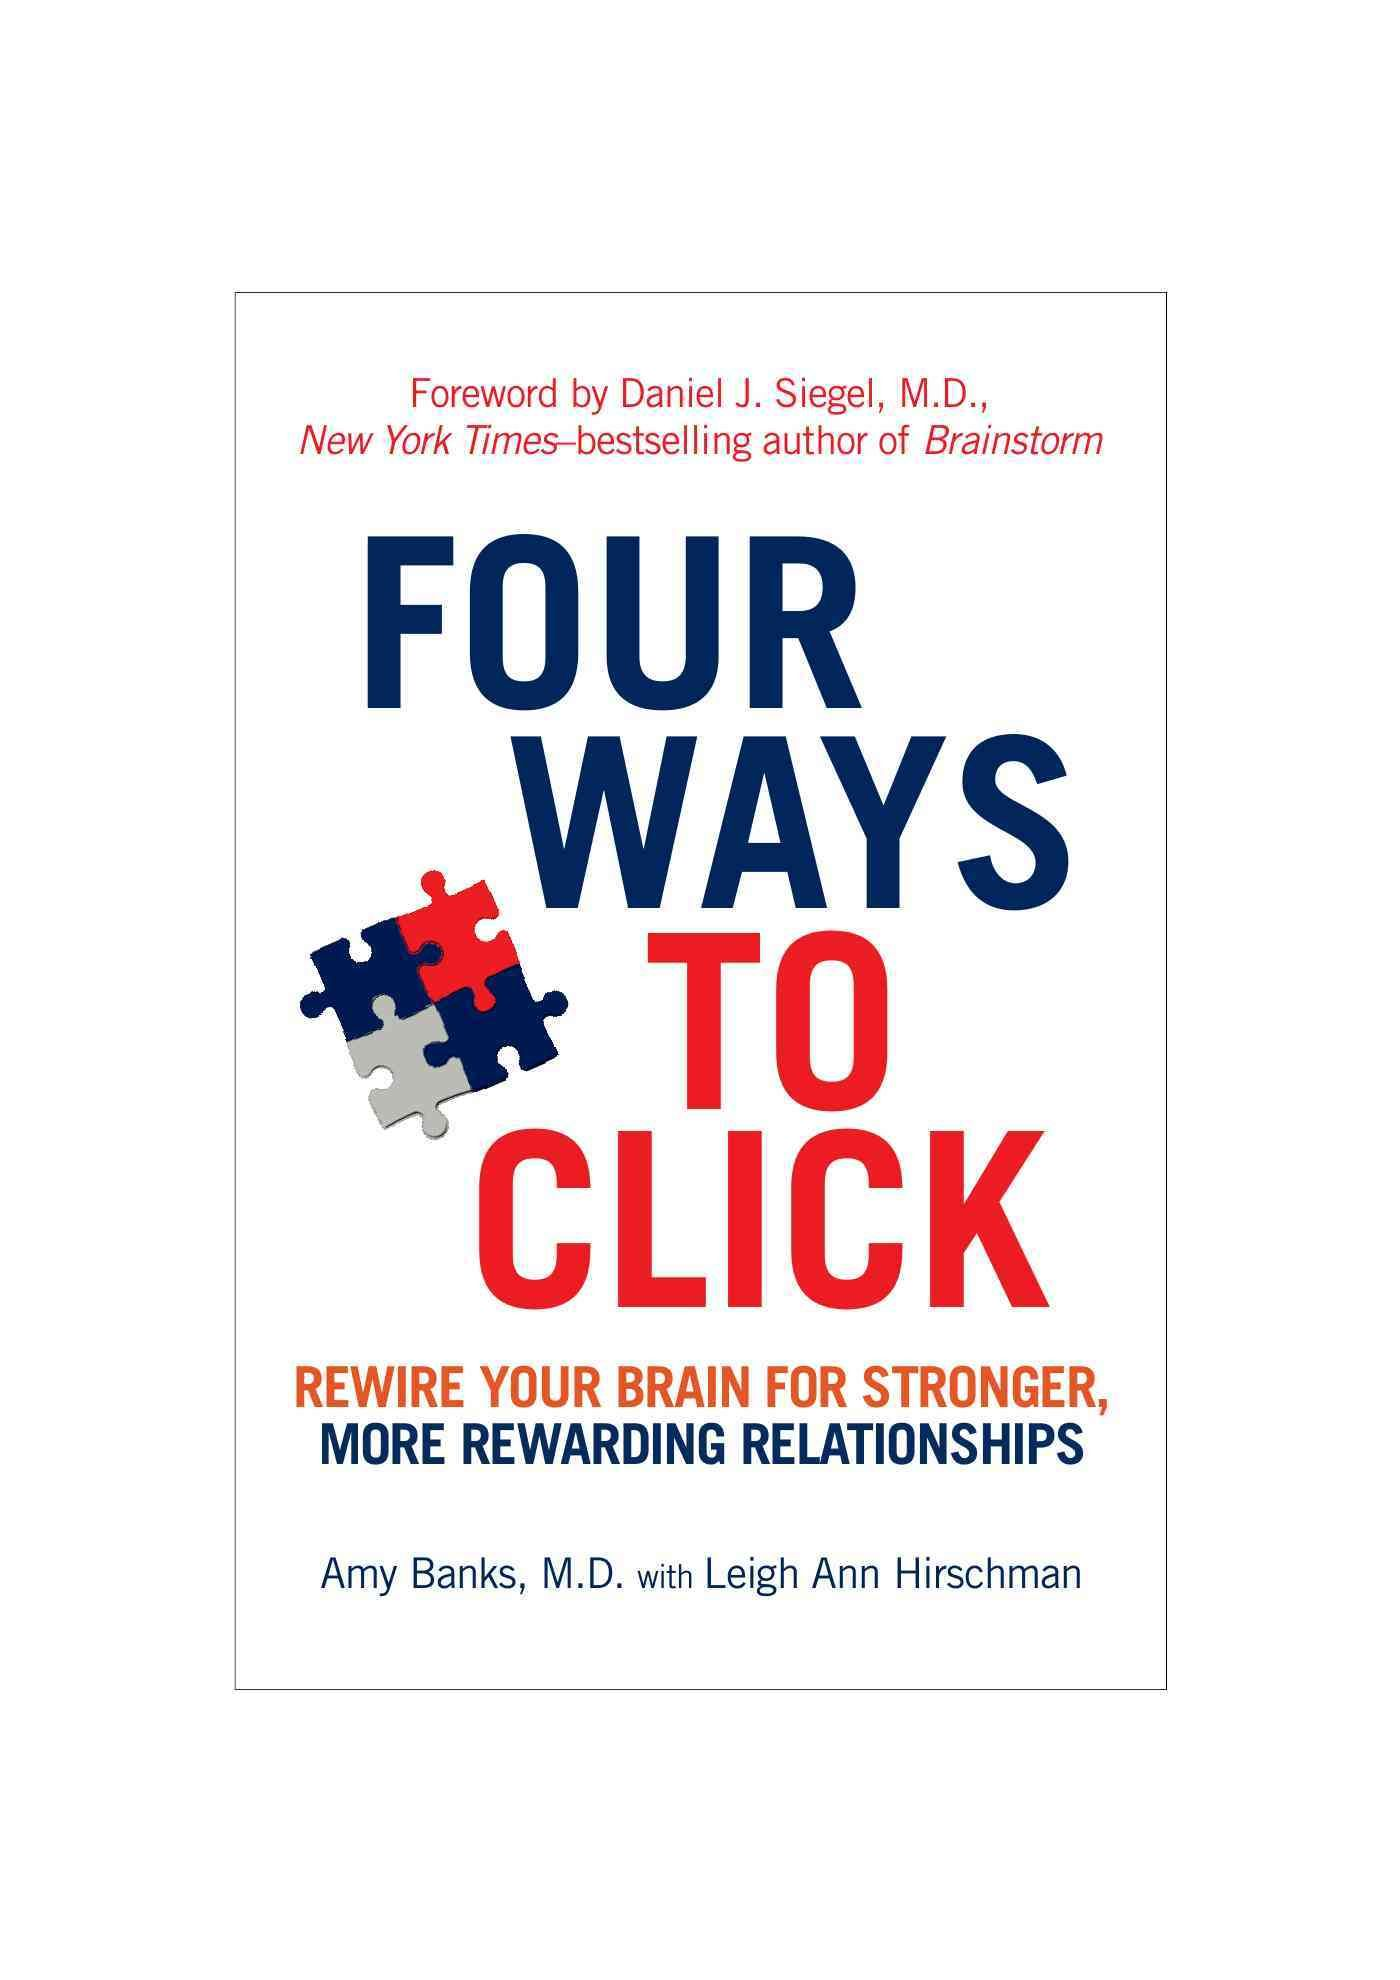 Four Ways to Click Rewire Your Brain for Stronger, More